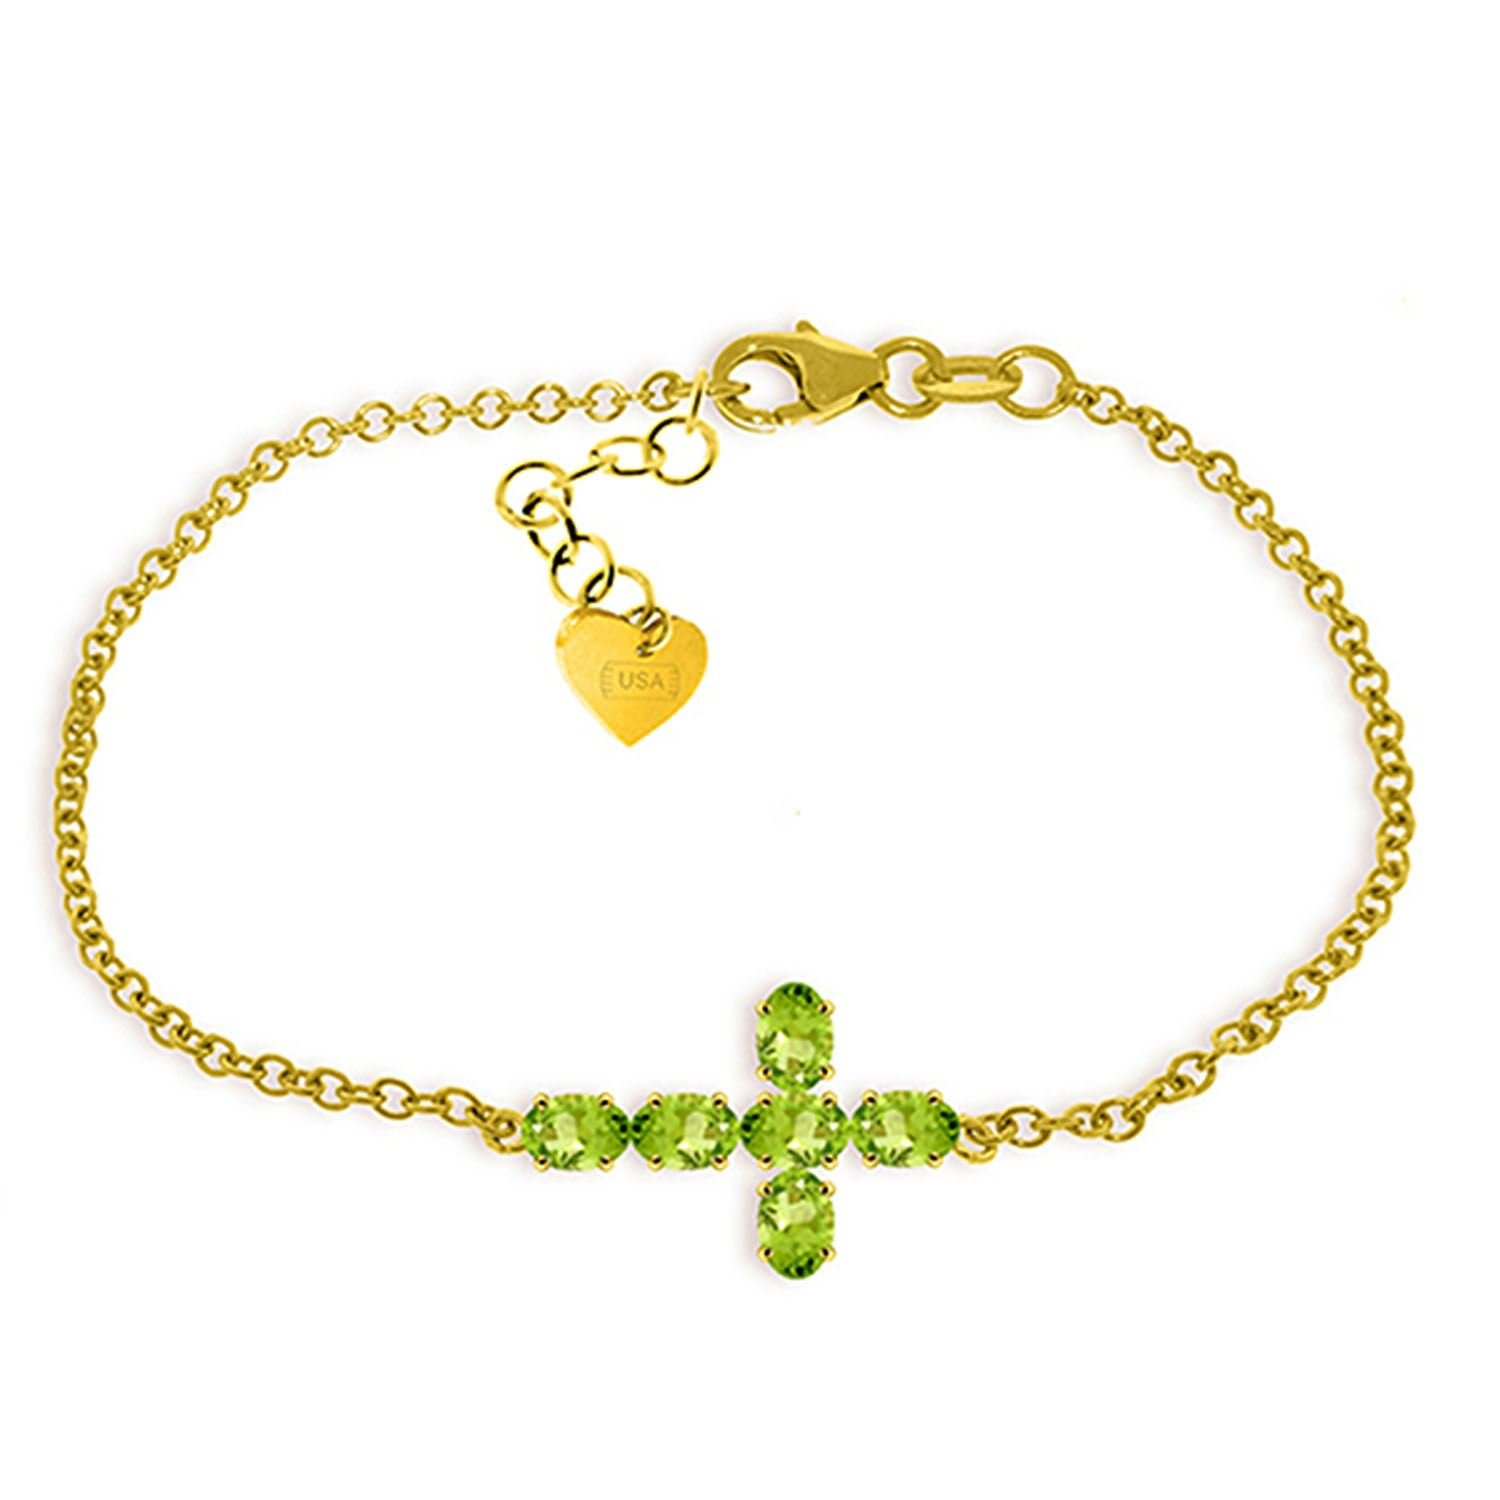 ALARRI 1.7 CTW 14K Solid Gold Cross Bracelet Natural Peridot Size 7.5 Inch Length